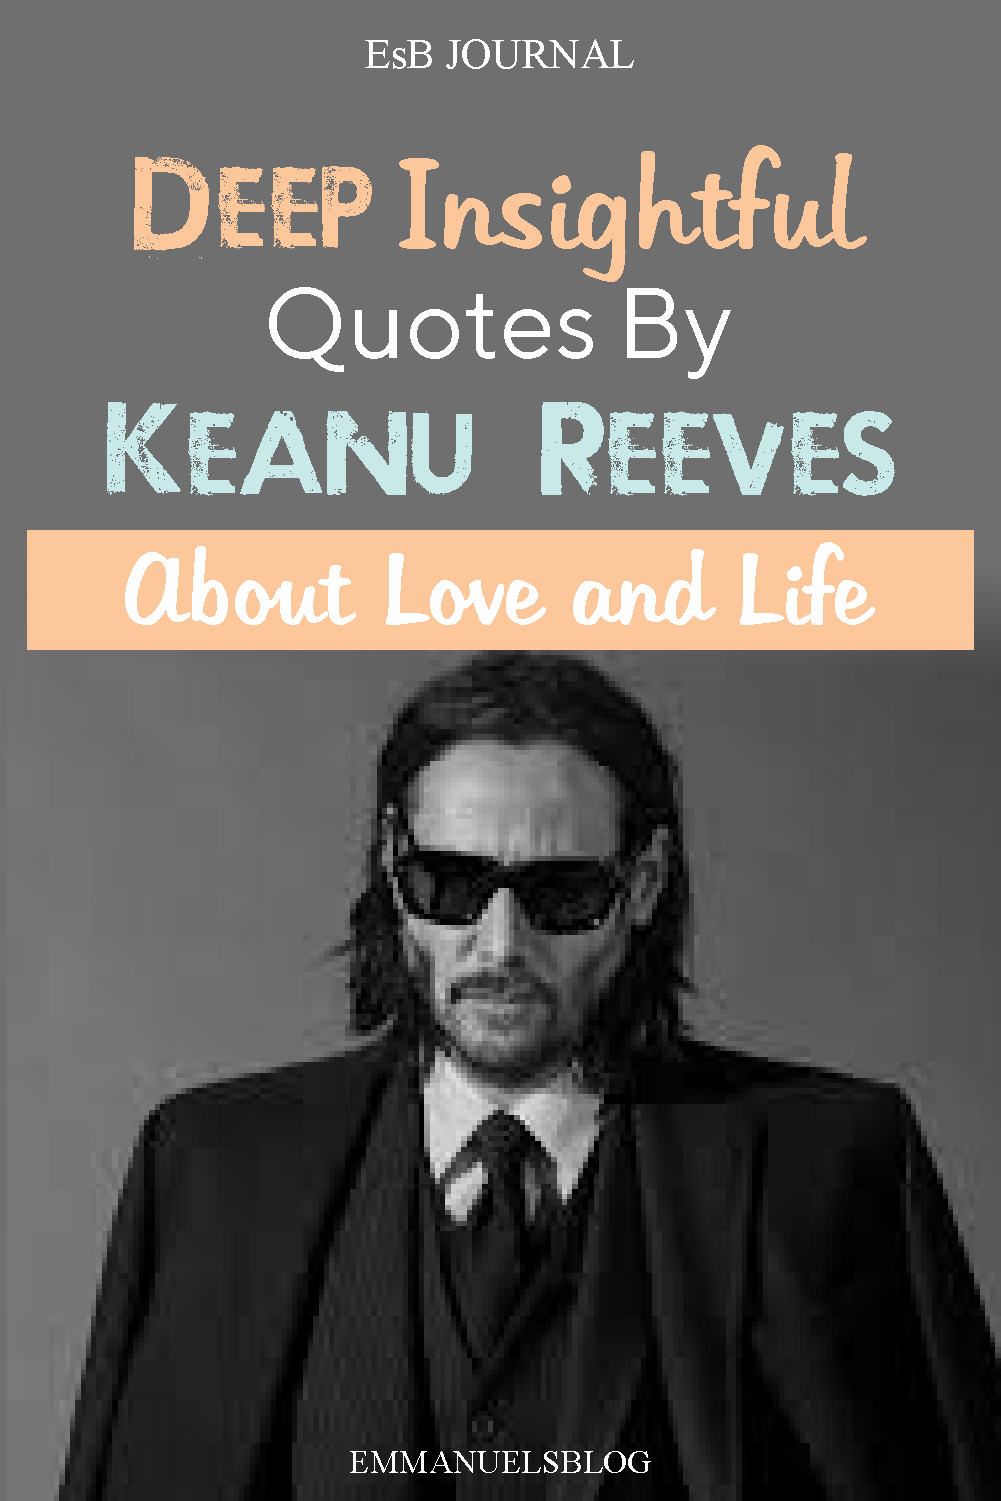 Deep Insightful Quotes By Keanu Reeves About Love and Life